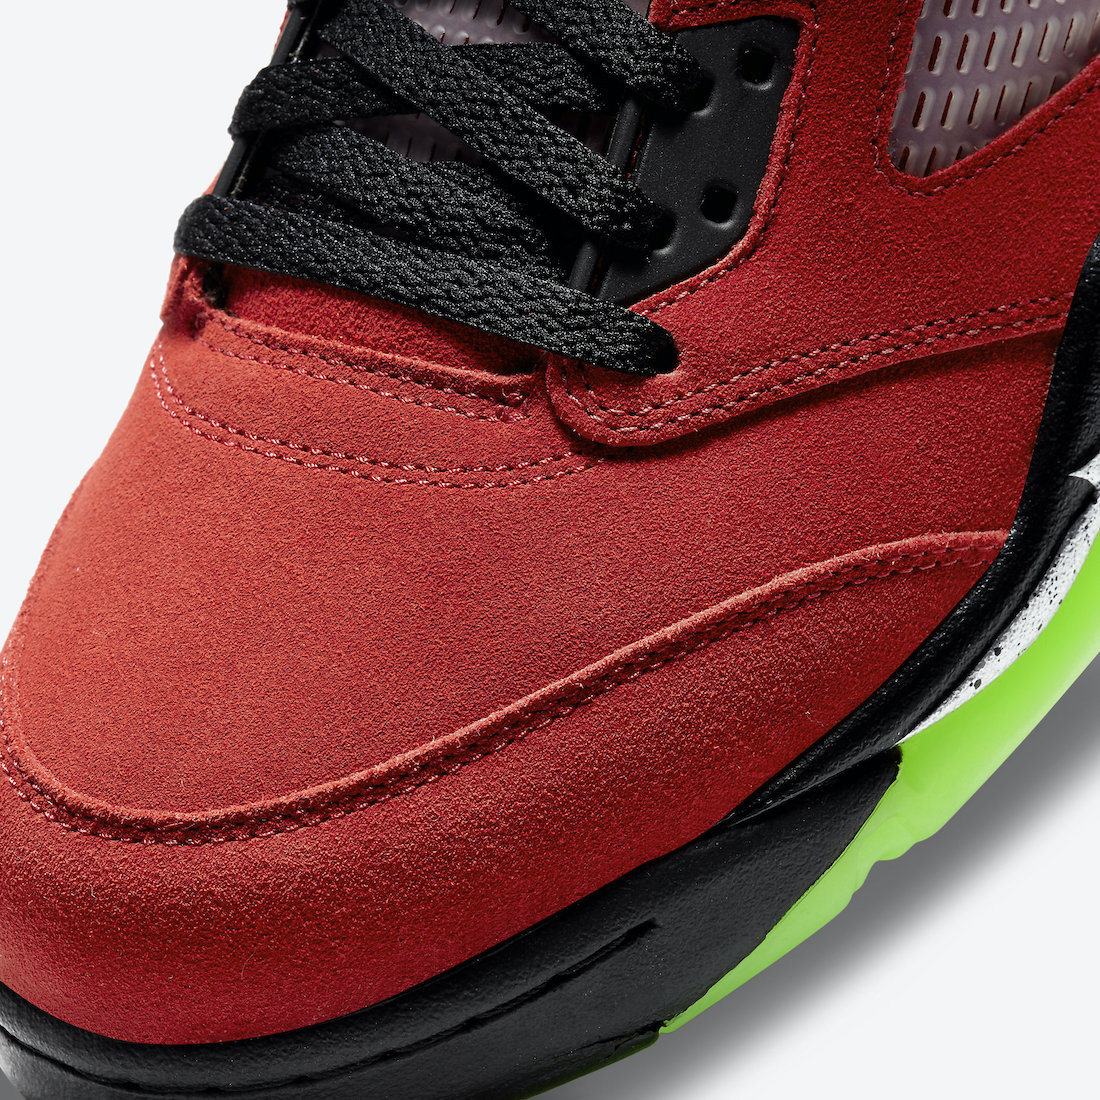 Air-Jordan-5-What-The-CZ5725-700-Release-Date-Price-6